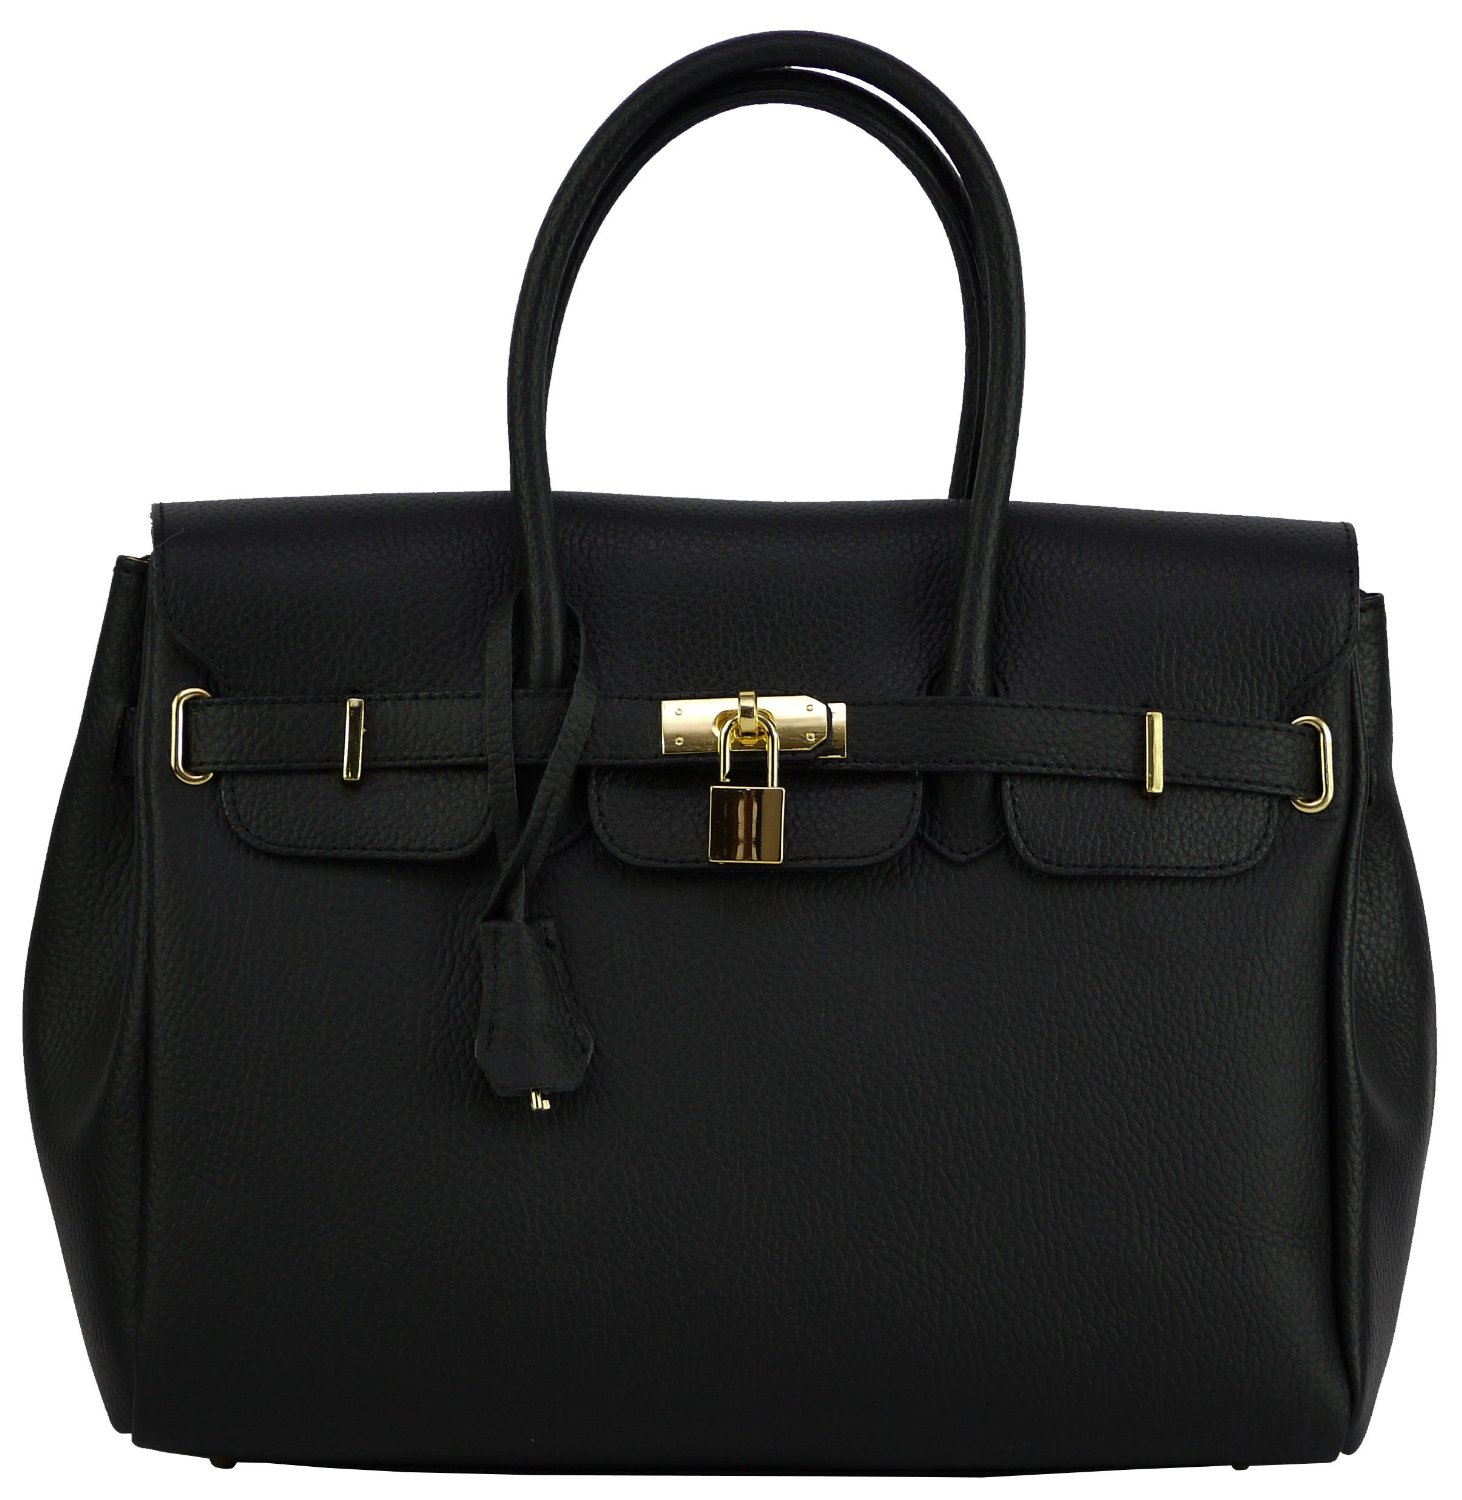 http://www.conmigolondon.co.uk/ekmps/shops/conmigo/images/1a.-real-italian-leather-brealleather-0011-big-black-real-leather-bag-made-in-florence-italy.-%5B2%5D-2405-p.jpg